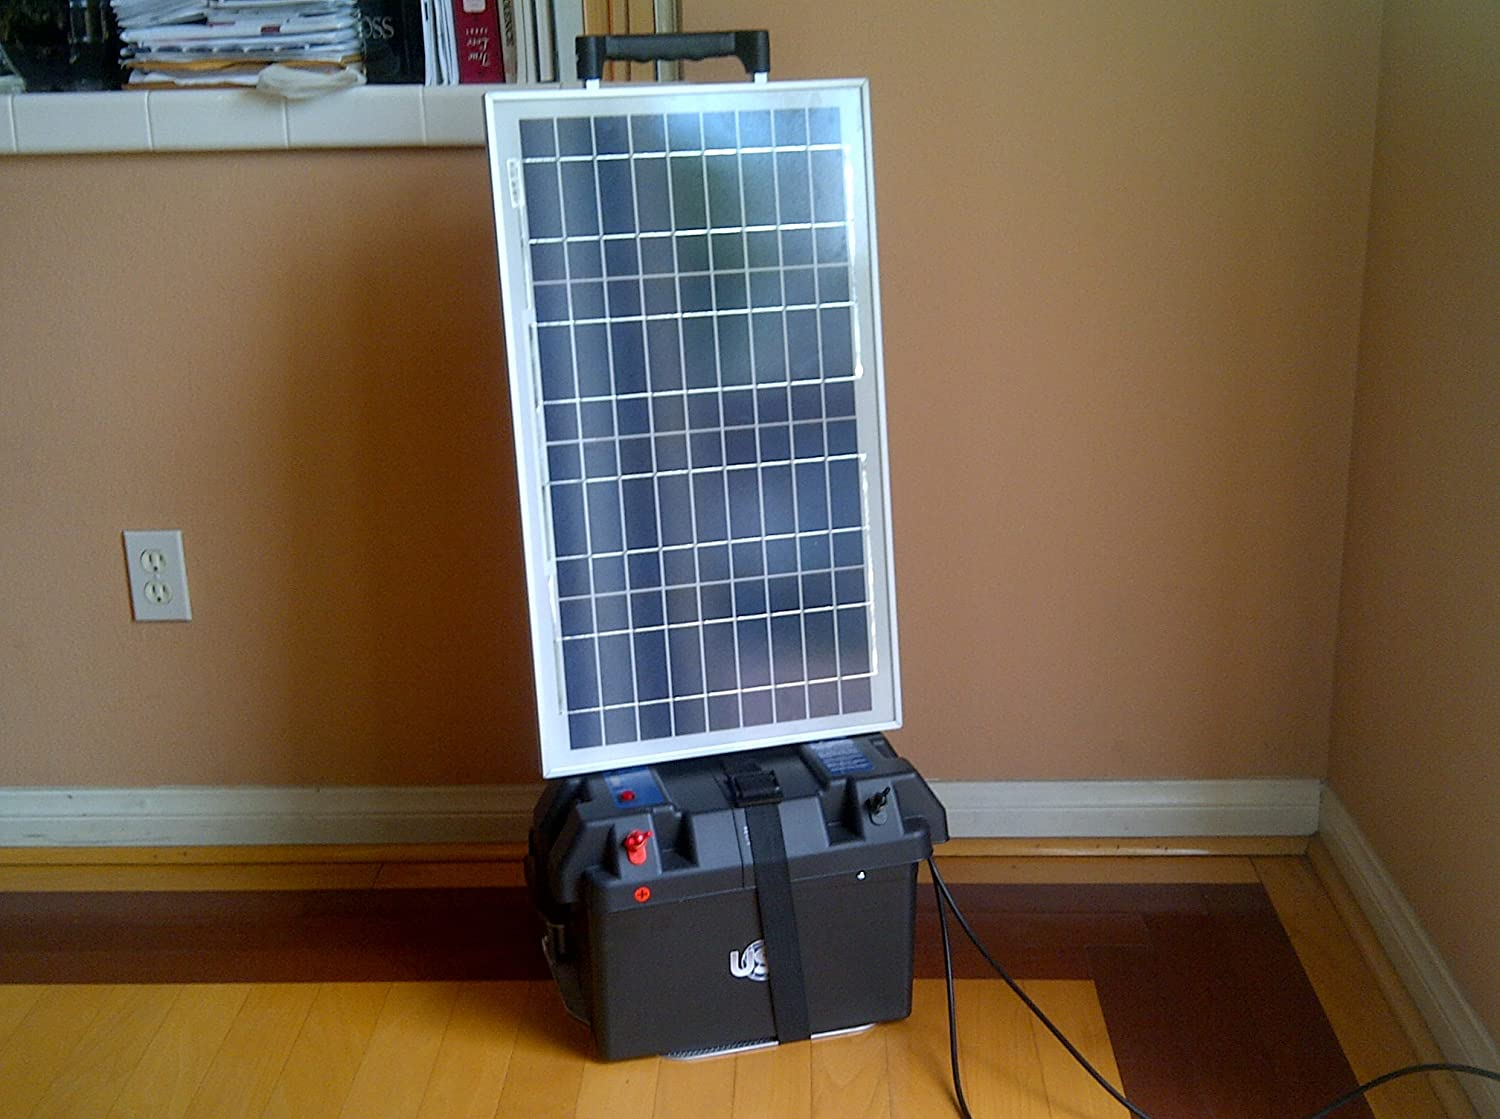 OG 55 Solar Power Generator – GUARANTEED TO BE THE MOST POWERFUL UNIT FOR THE PRICE – OR WE WILL PAY YOU THE DIFFERENCE*